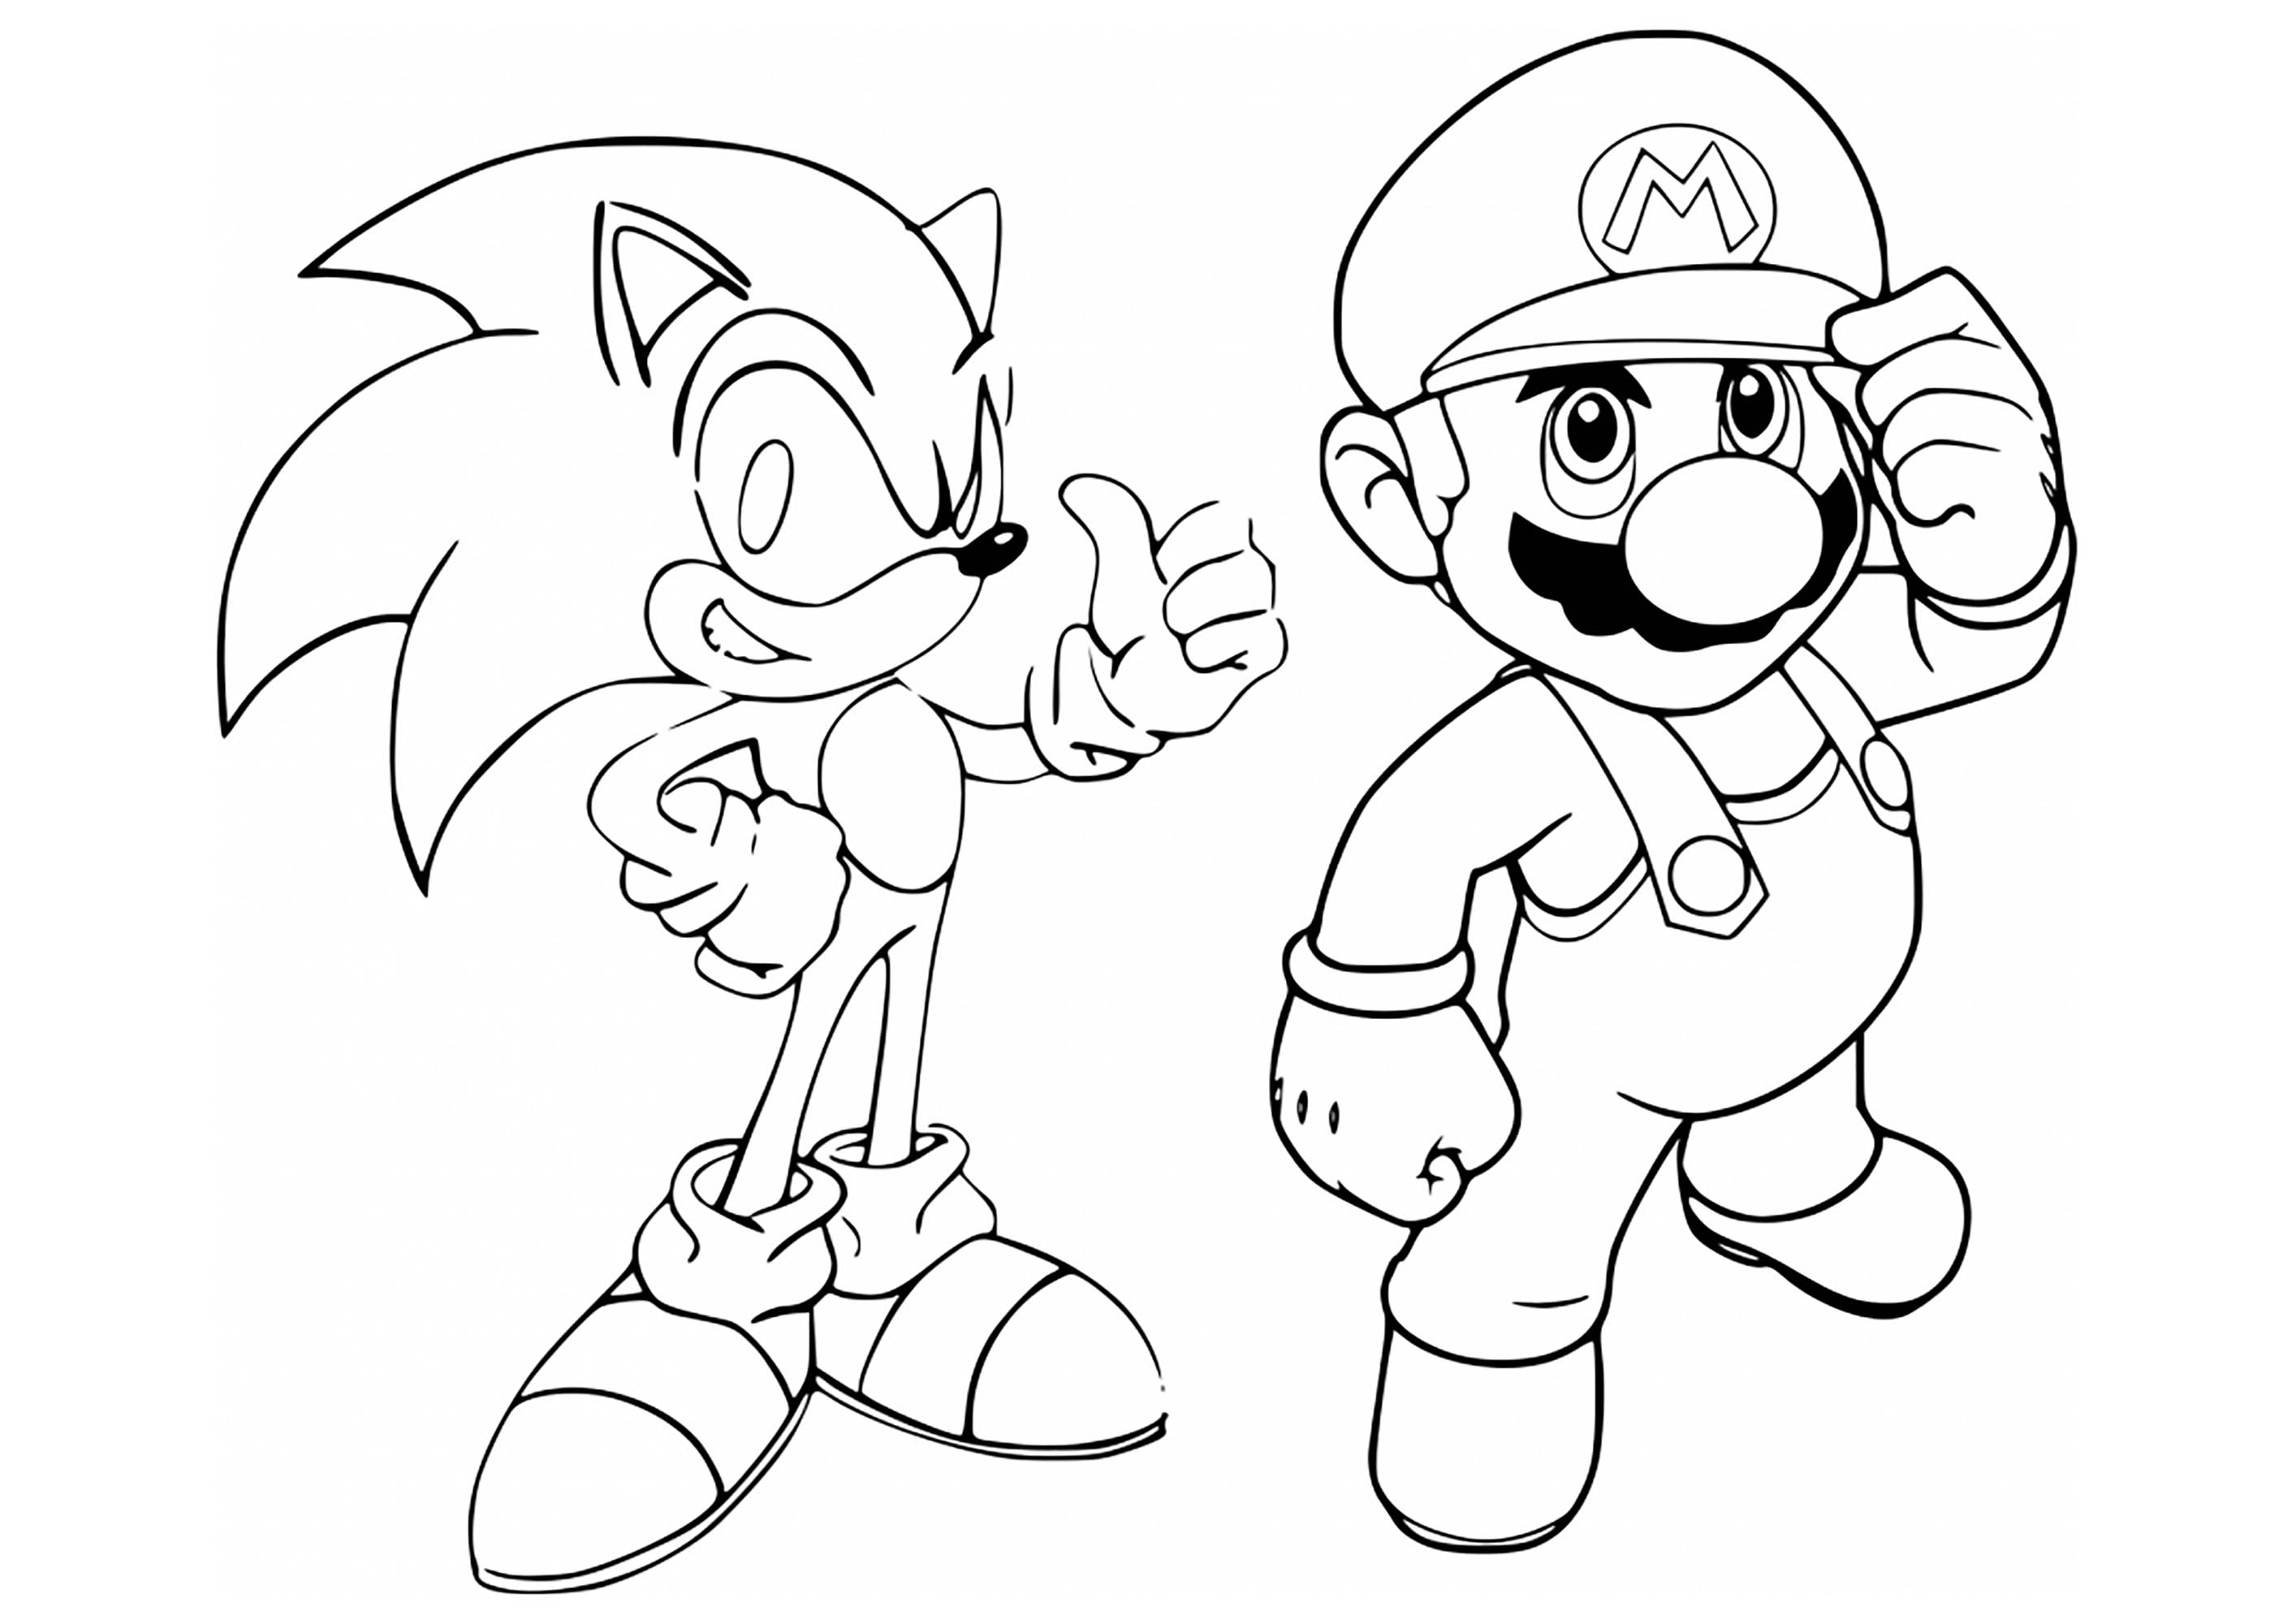 mario color pages official mario coloring pages gonintendo color pages mario